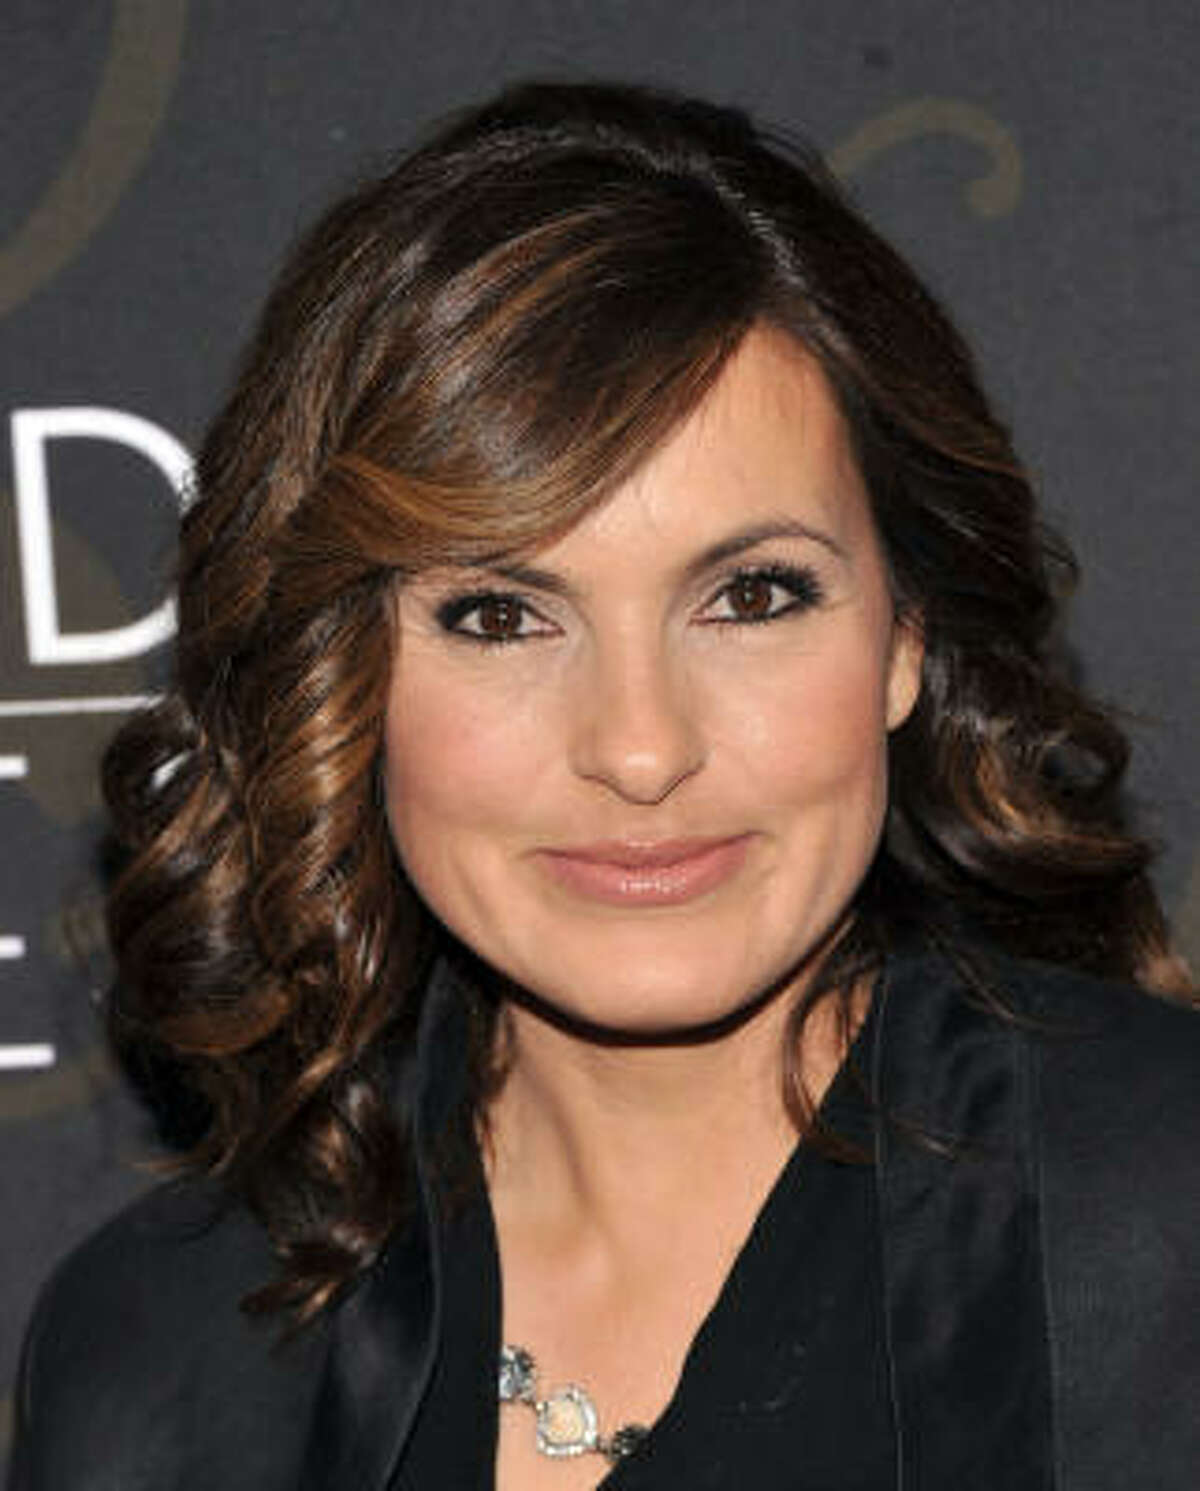 Mariska Hargitay is nominated for best actress in a drama series for her role in